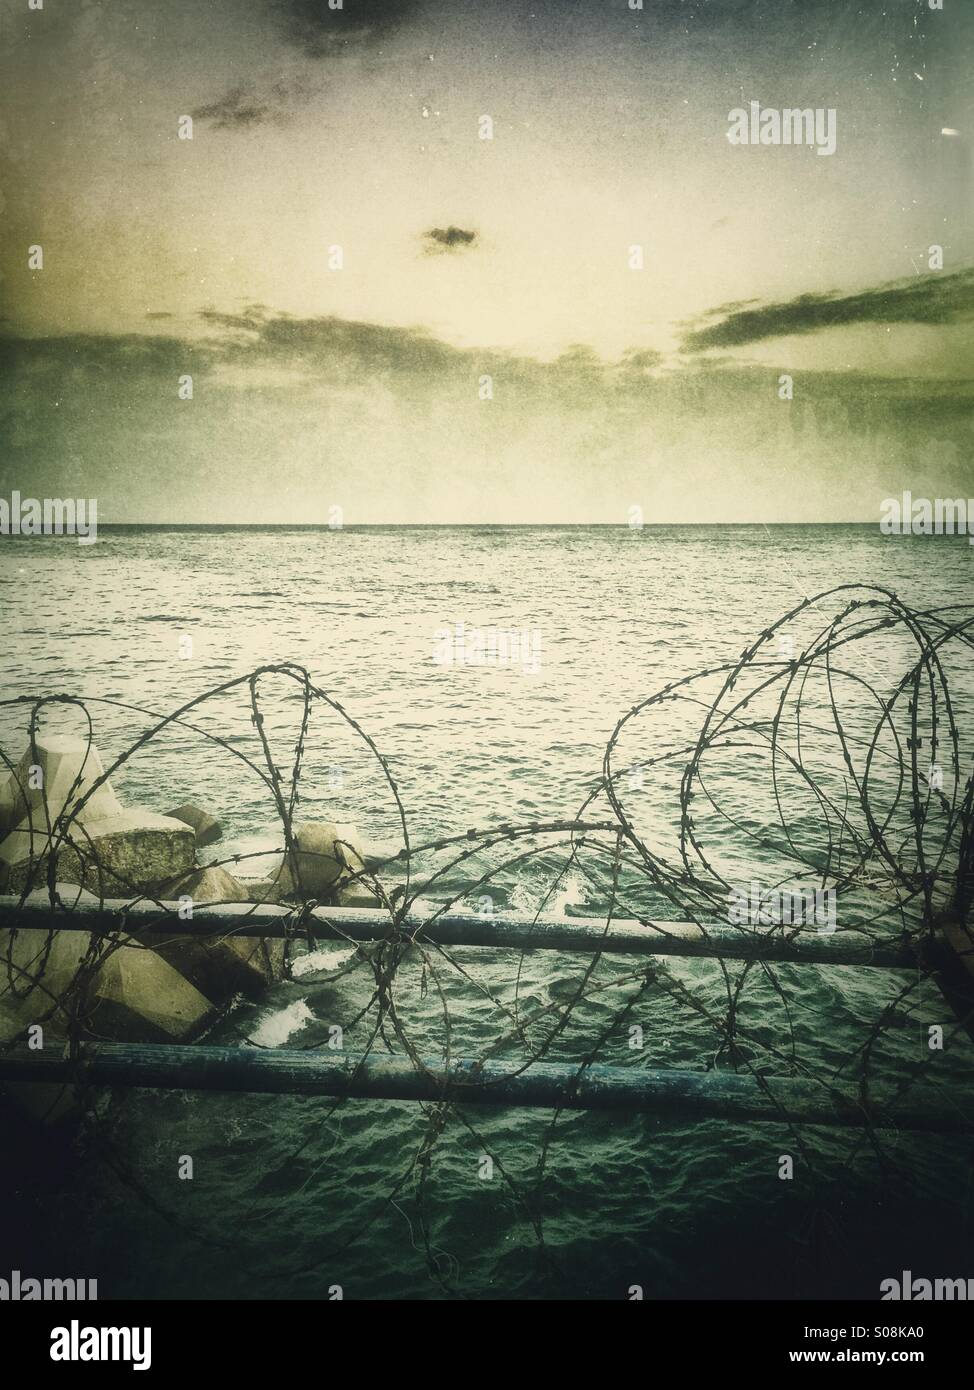 Barbwires by the sea - Stock Image